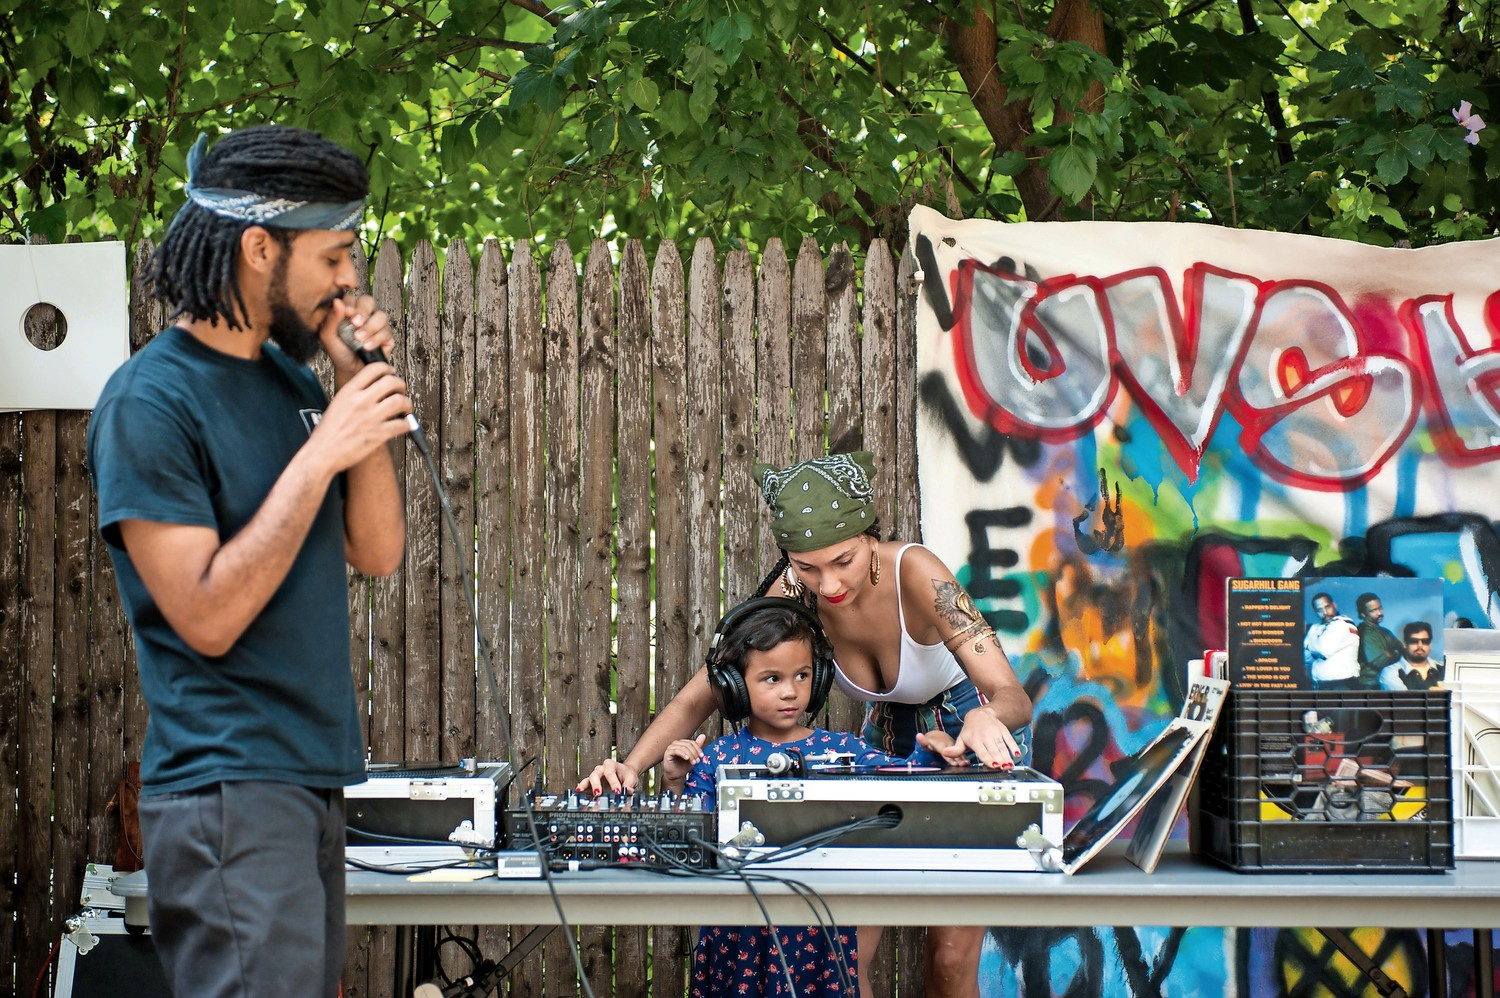 Sunny Vazquez, one of the co-founders of Uptown Vinyl Supreme and co-founder of the Hip-Hop Summer School course at the Kingsbridge Heights Community Center, helps student Scarlett Gomez scratch a record at the summer jam to celebrate the end of the five-week course.